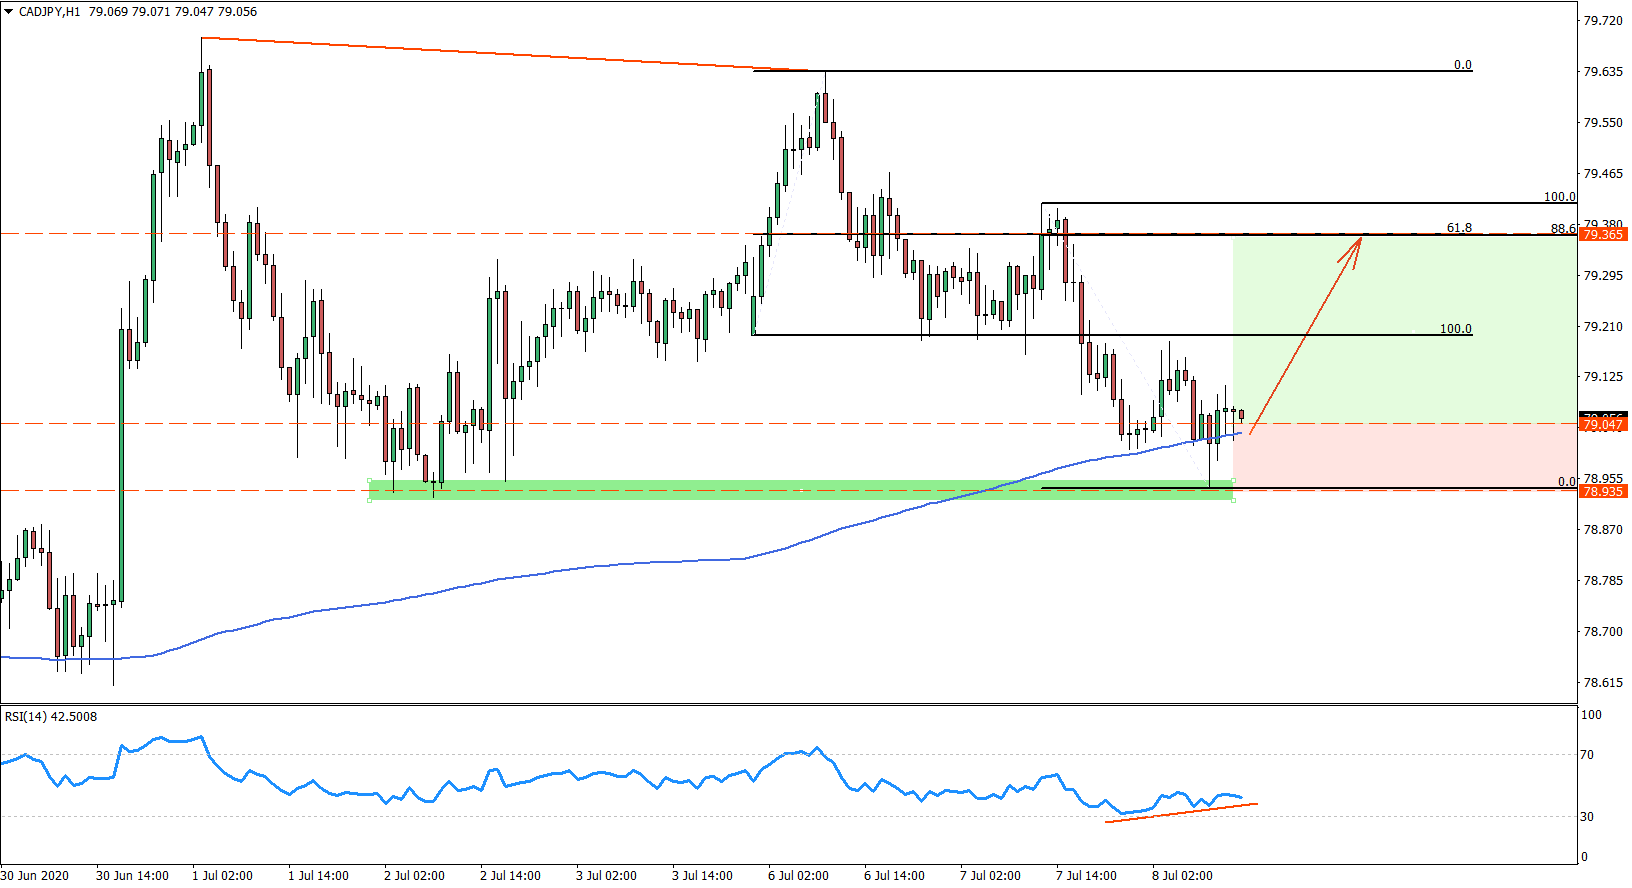 CADJPY hourly chart on June 8th 2020